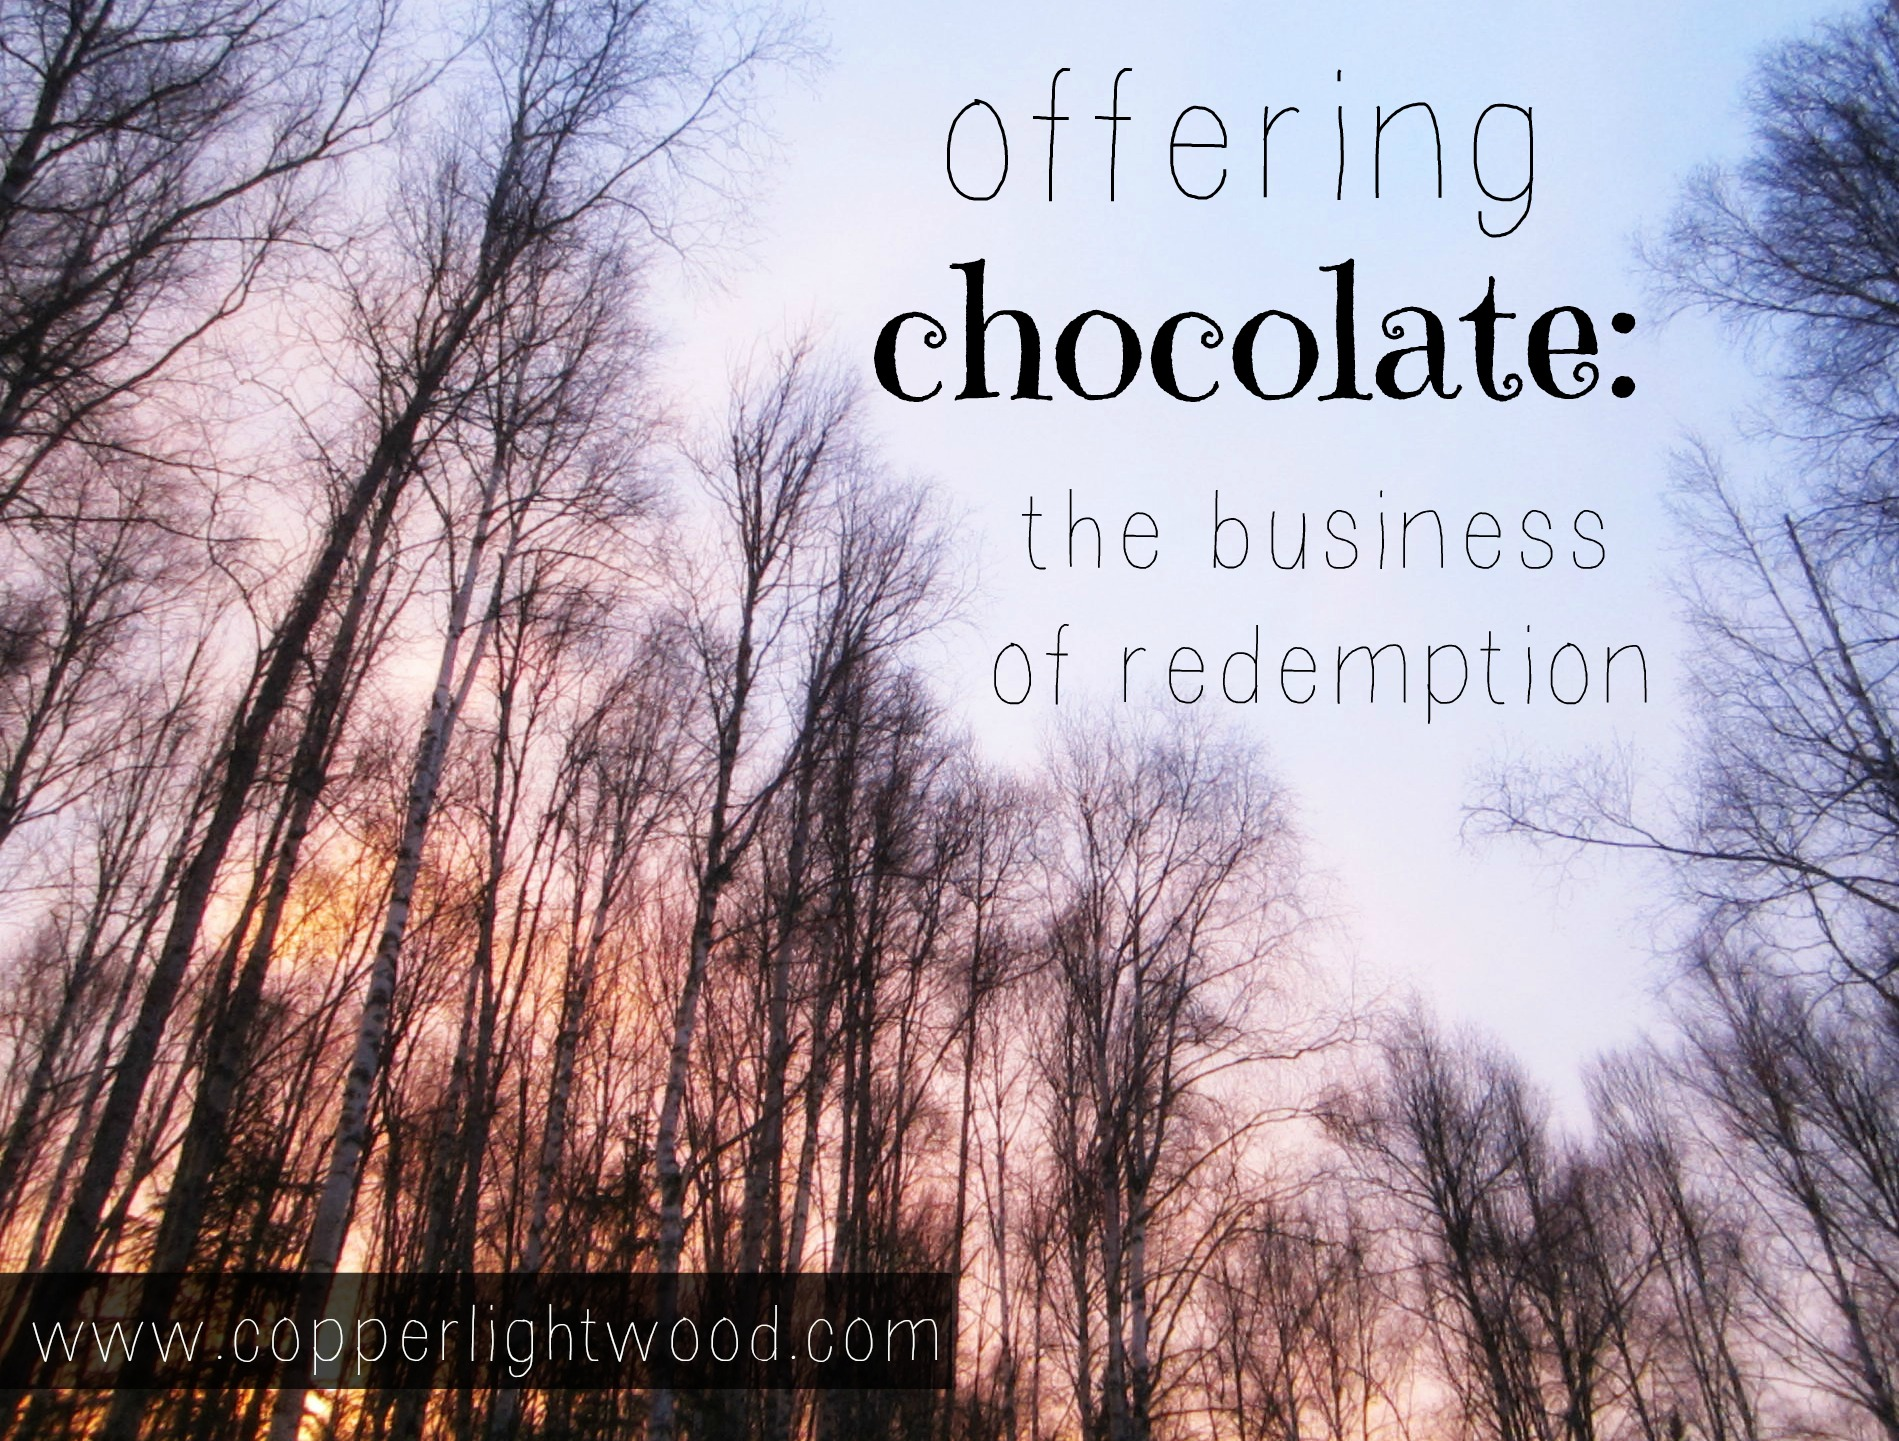 offering chocolate: the business of redemption